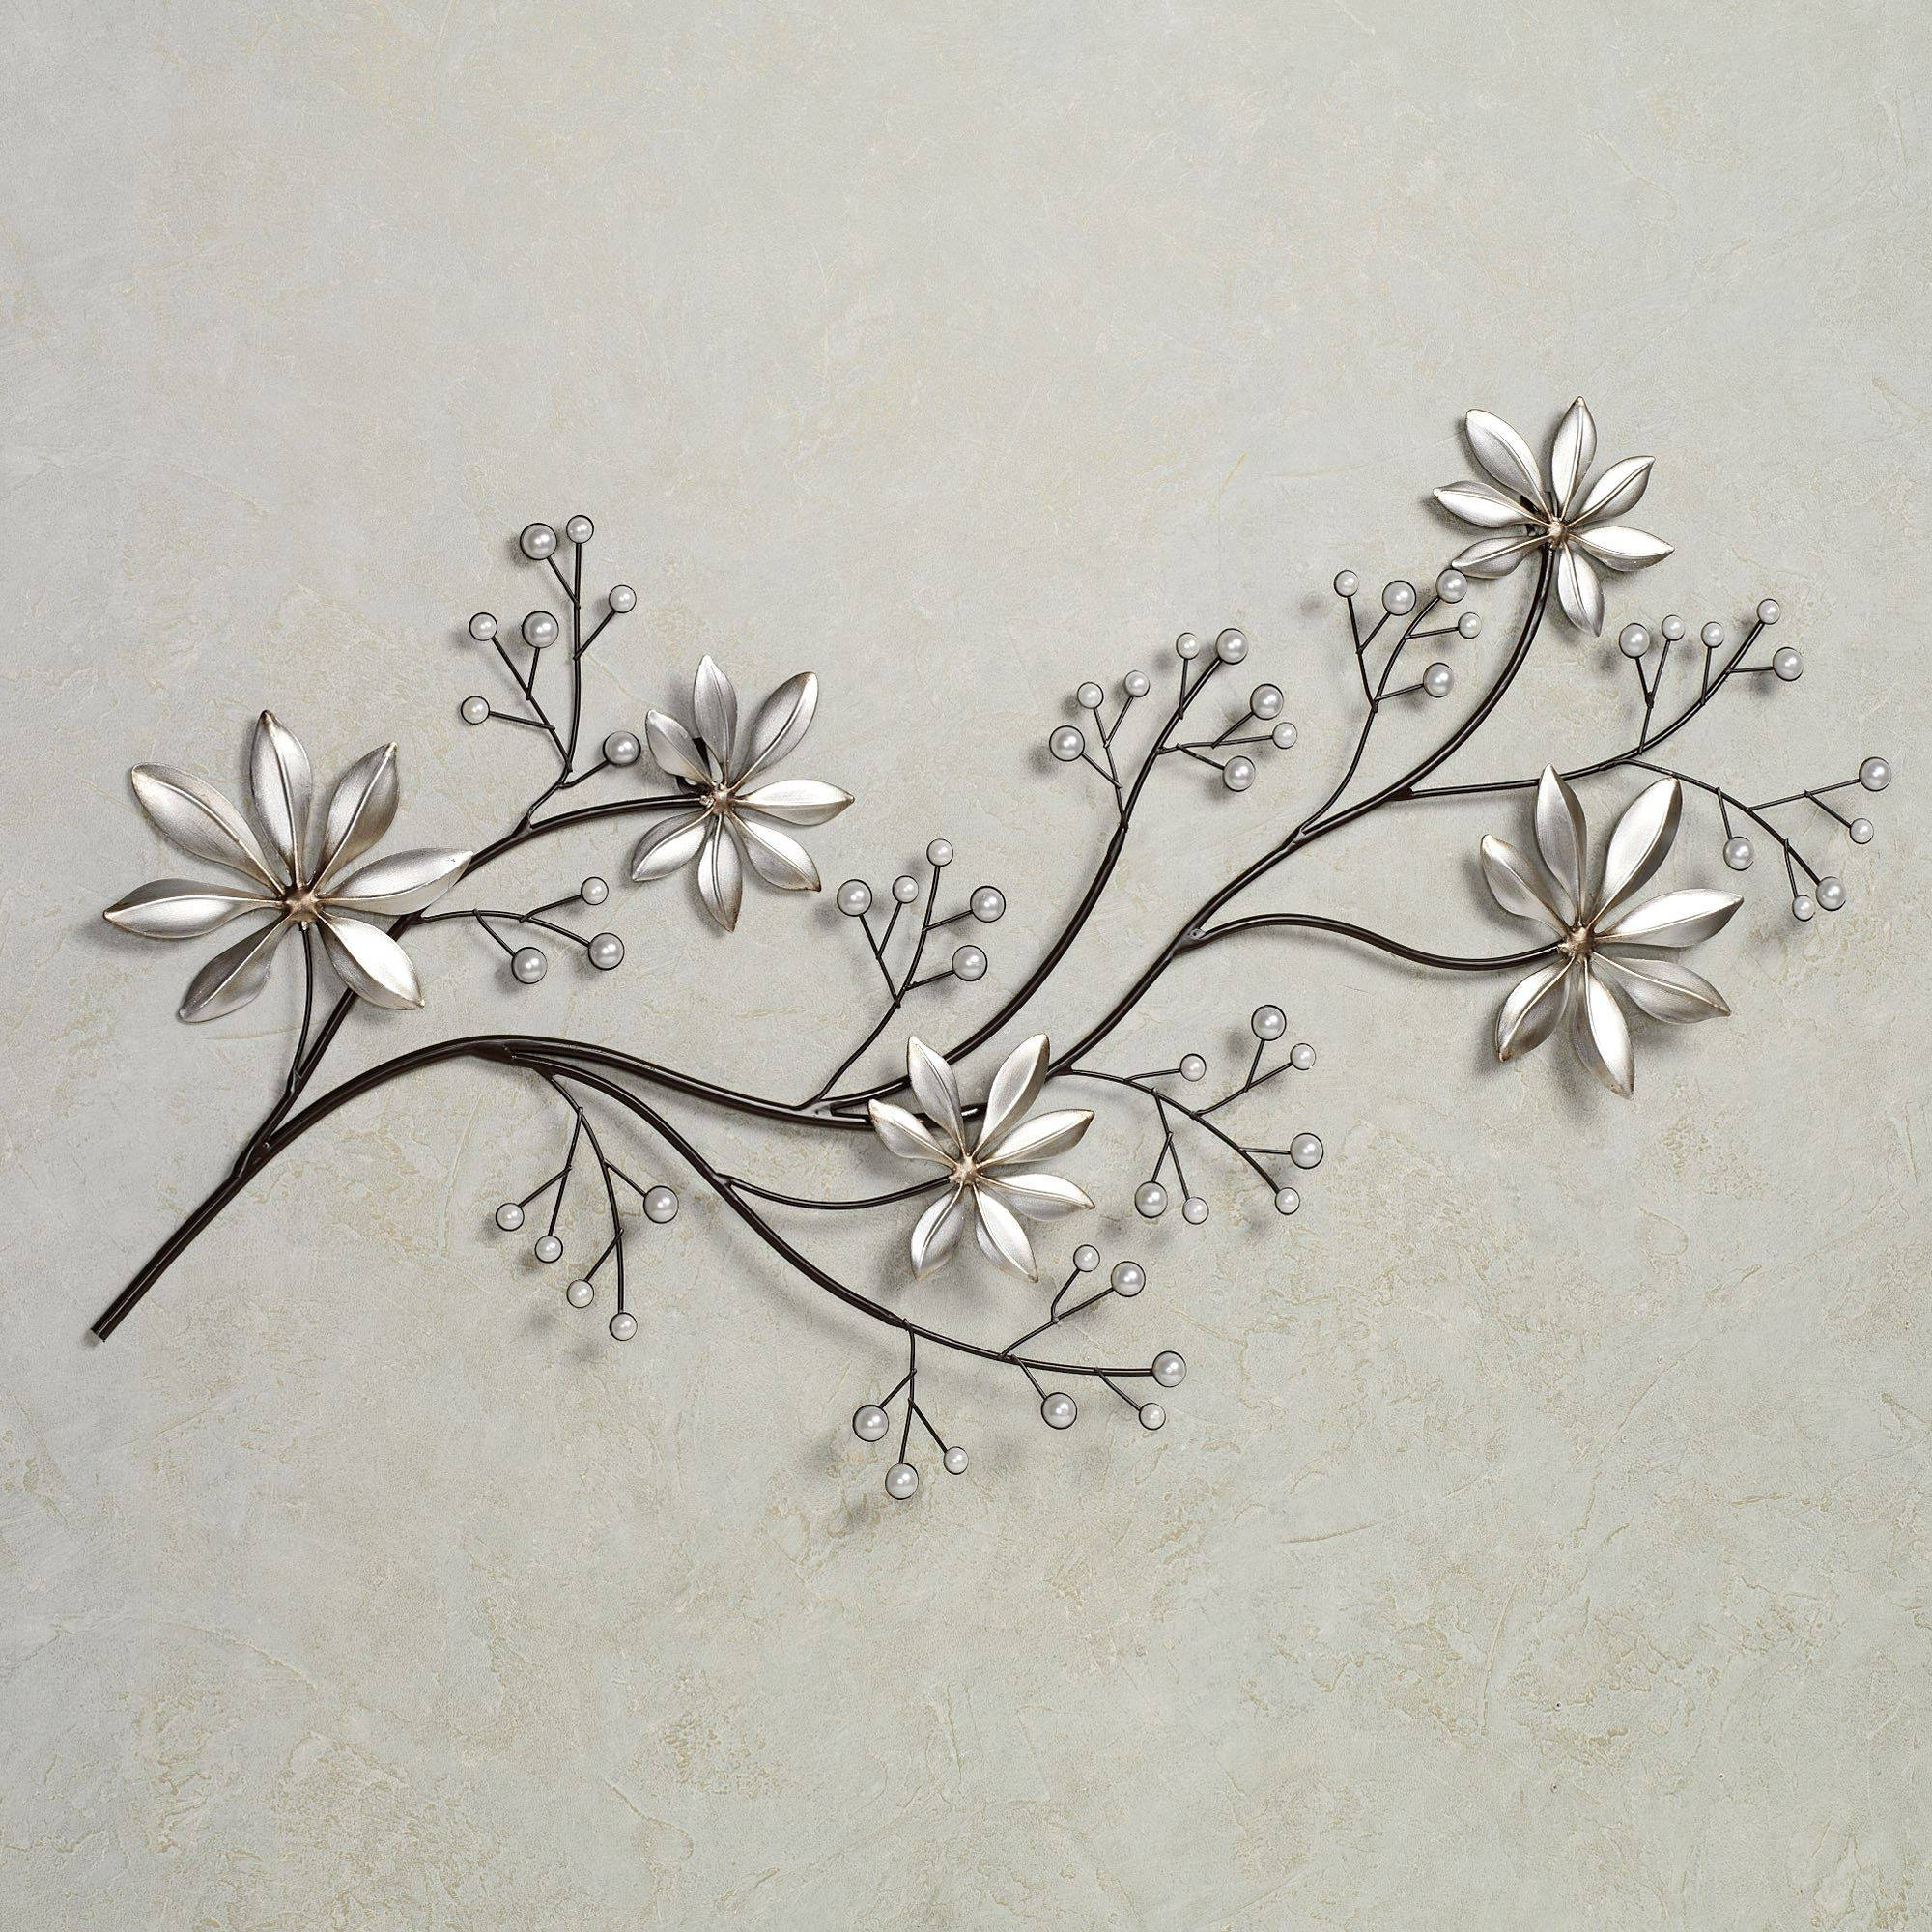 Pearl Array Floral Metal Wall Art Inside Most Current Floral Metal Wall Art (Gallery 1 of 20)